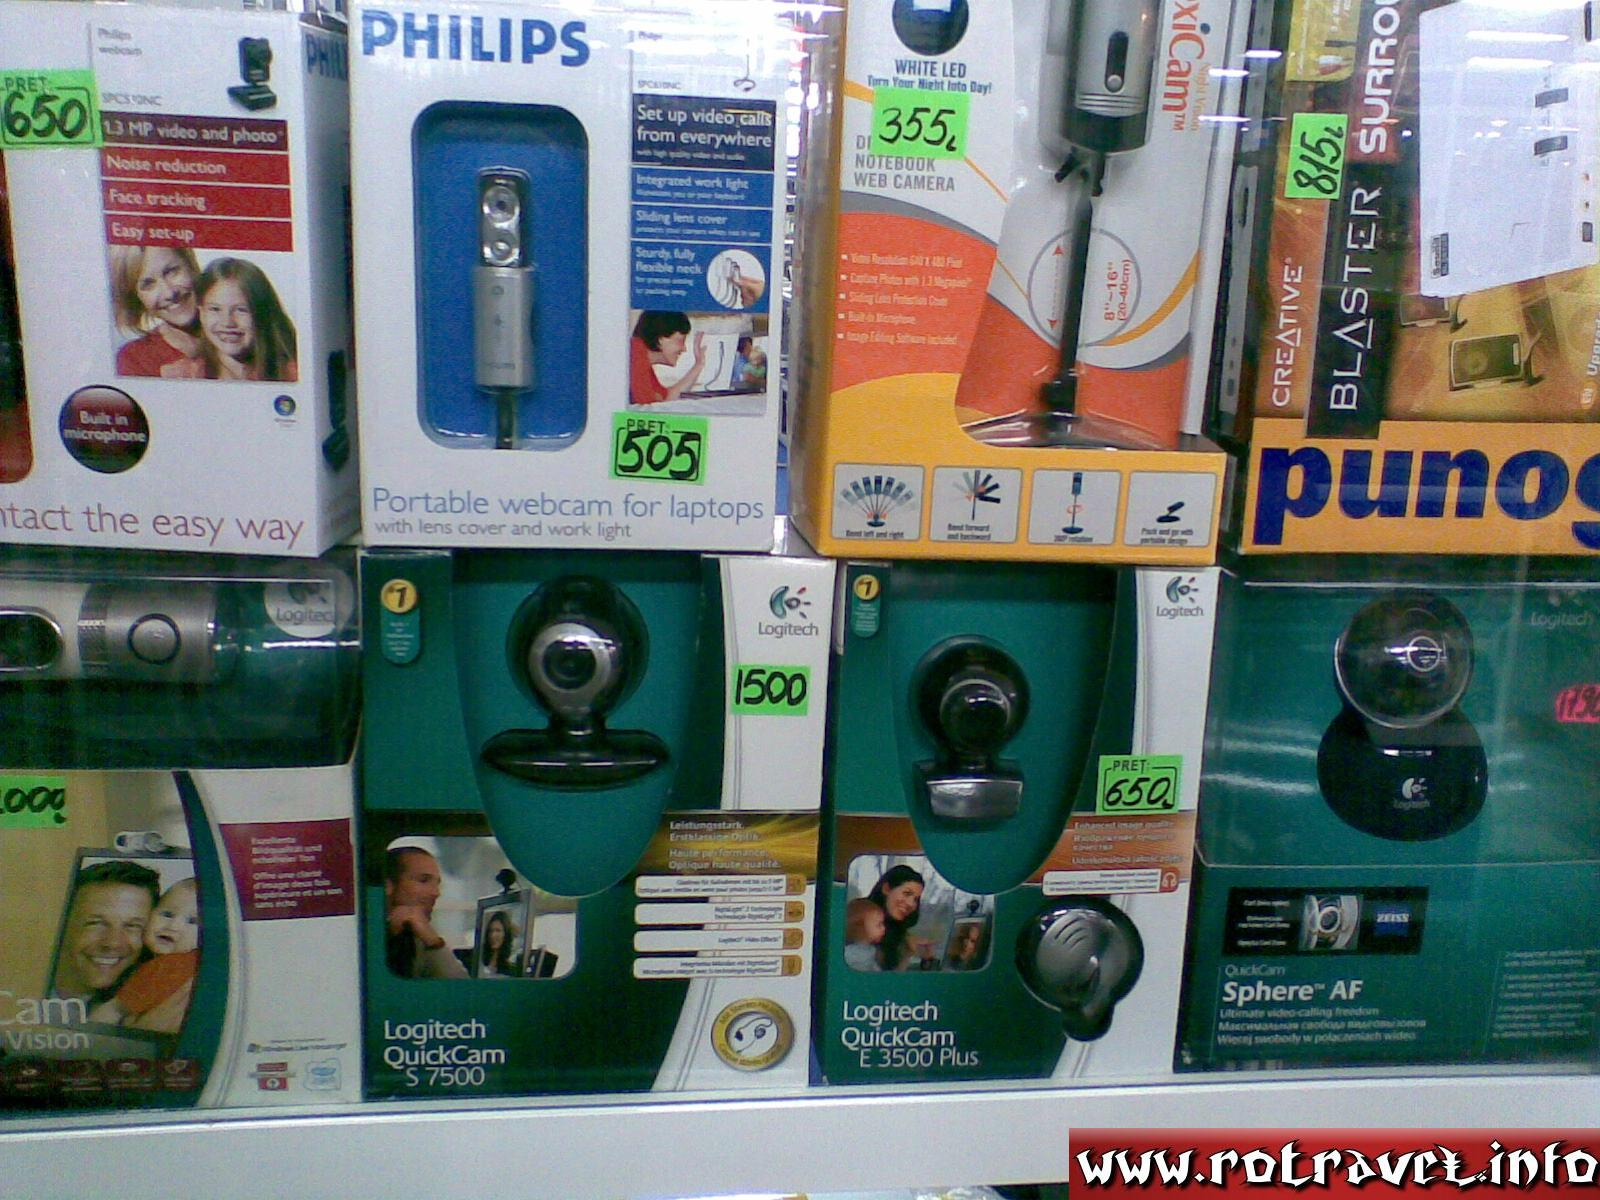 Some prices at webcams (1500 moldavian lei mean almost 400 romanian lei or 95 euro)